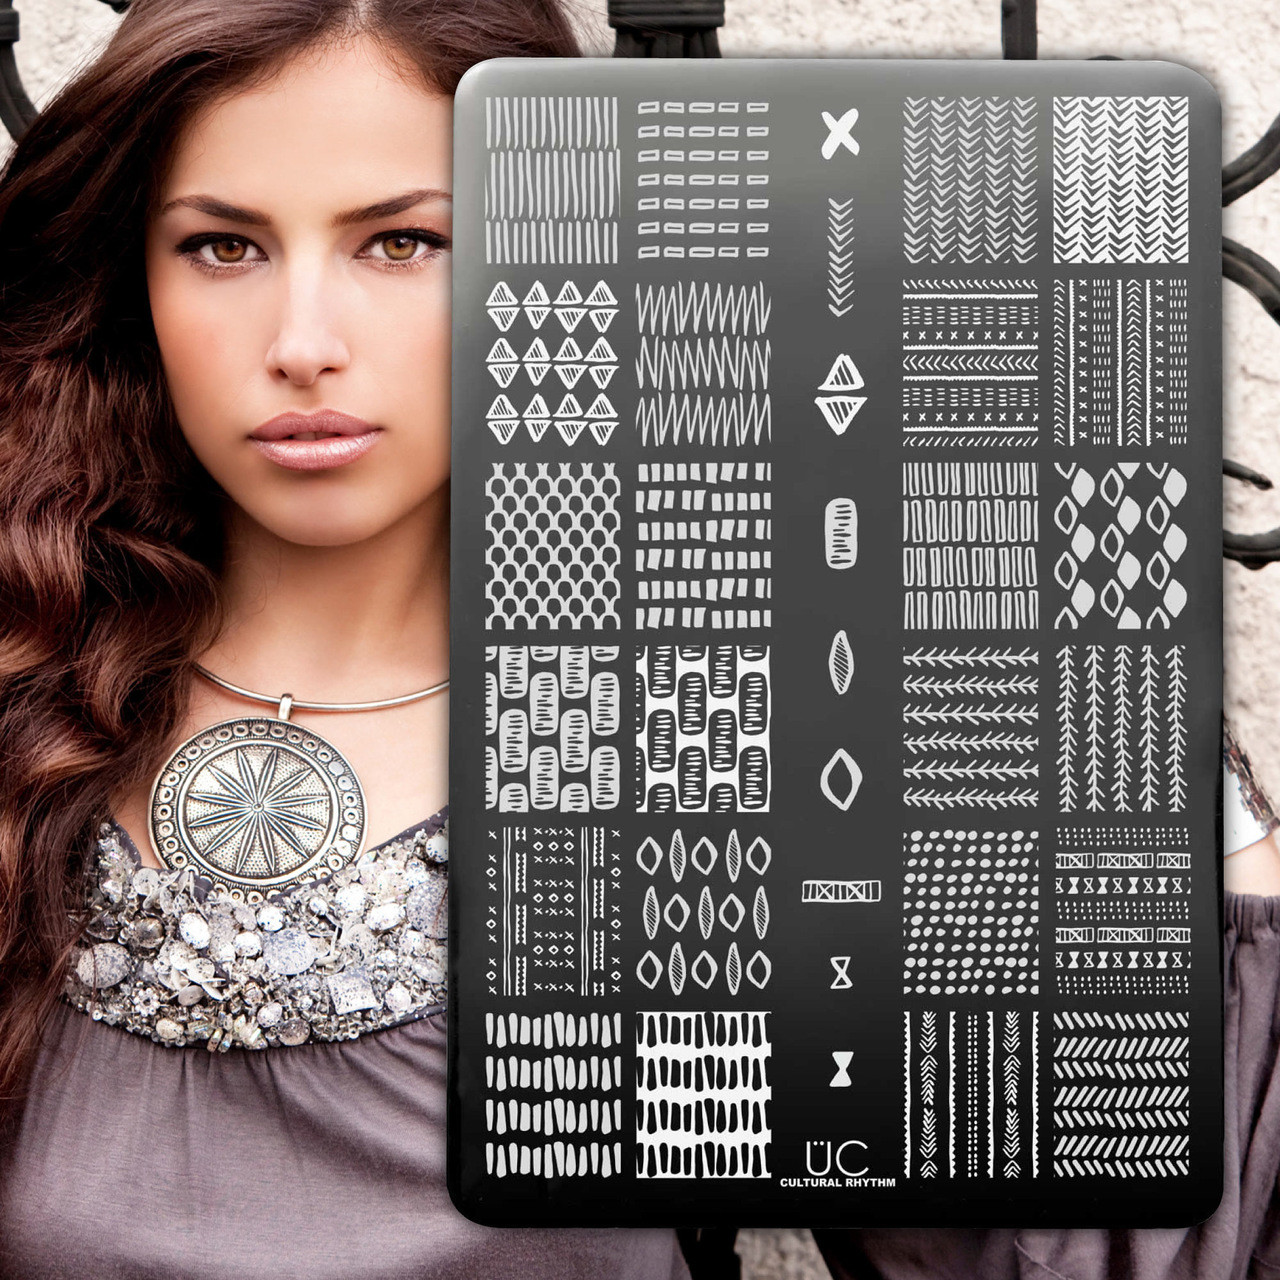 Uber Chic Cultural Rhythm nail stamping plate, available at www.lanternandwren.com.